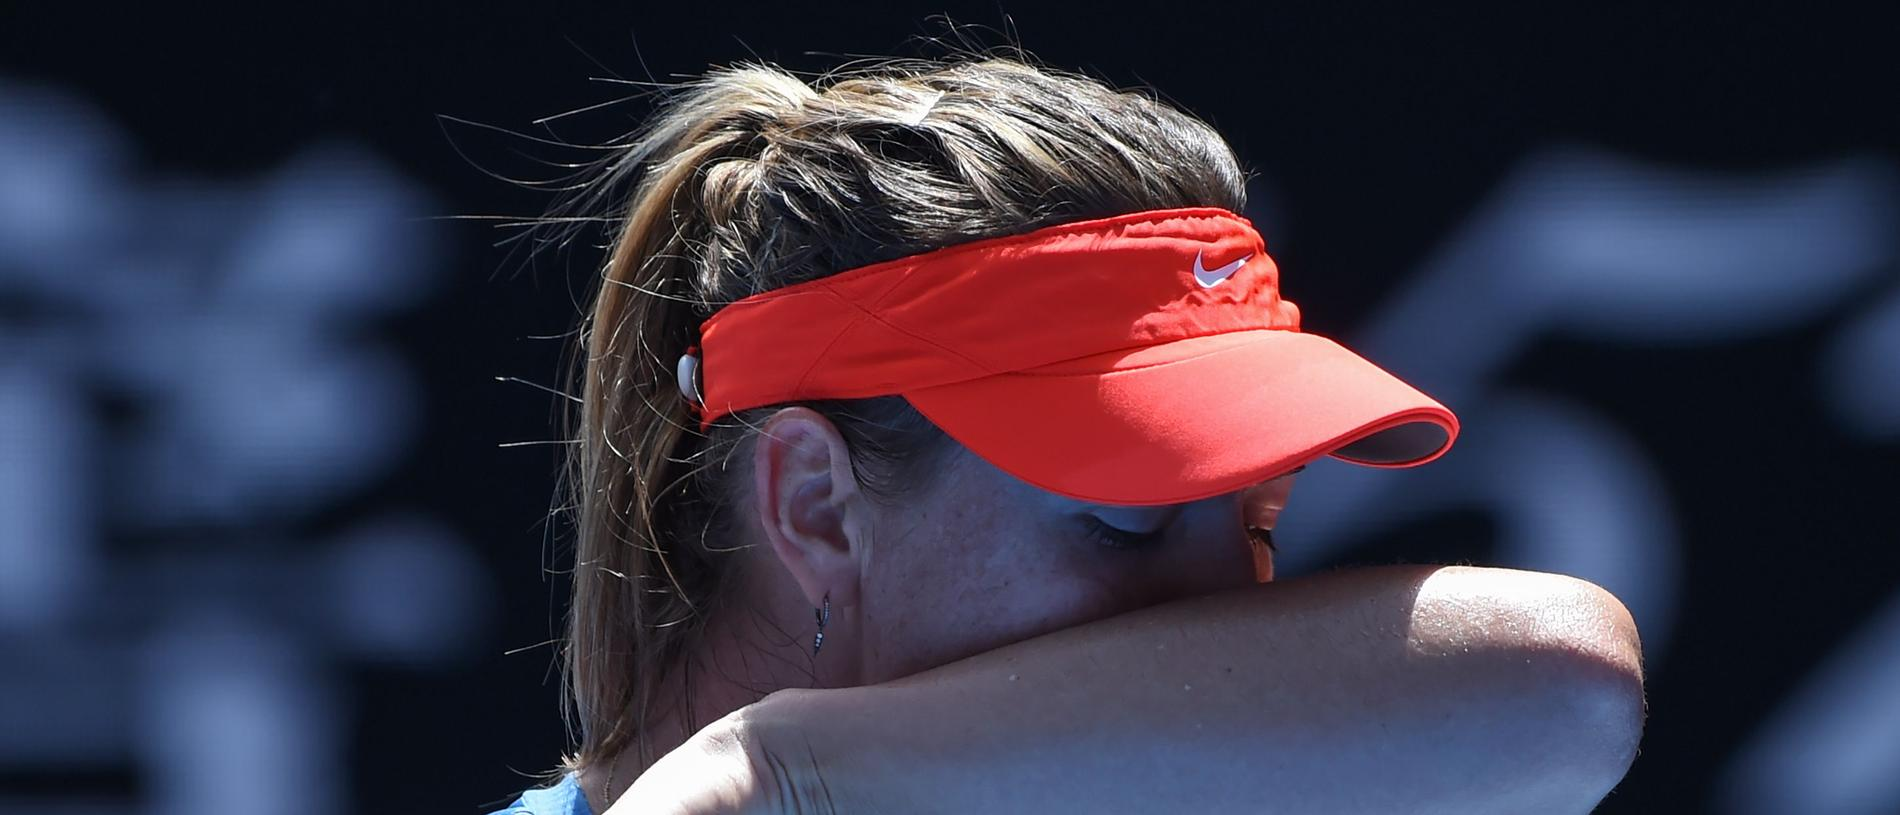 Russia's Maria Sharapova wipes sweat off her face while playing against Australia's Ashleigh Barty during their women's singles match on day seven of the Australian Open tennis tournament in Melbourne on January 20, 2019. (Photo by Greg Wood / AFP) / -- IMAGE RESTRICTED TO EDITORIAL USE - STRICTLY NO COMMERCIAL USE --